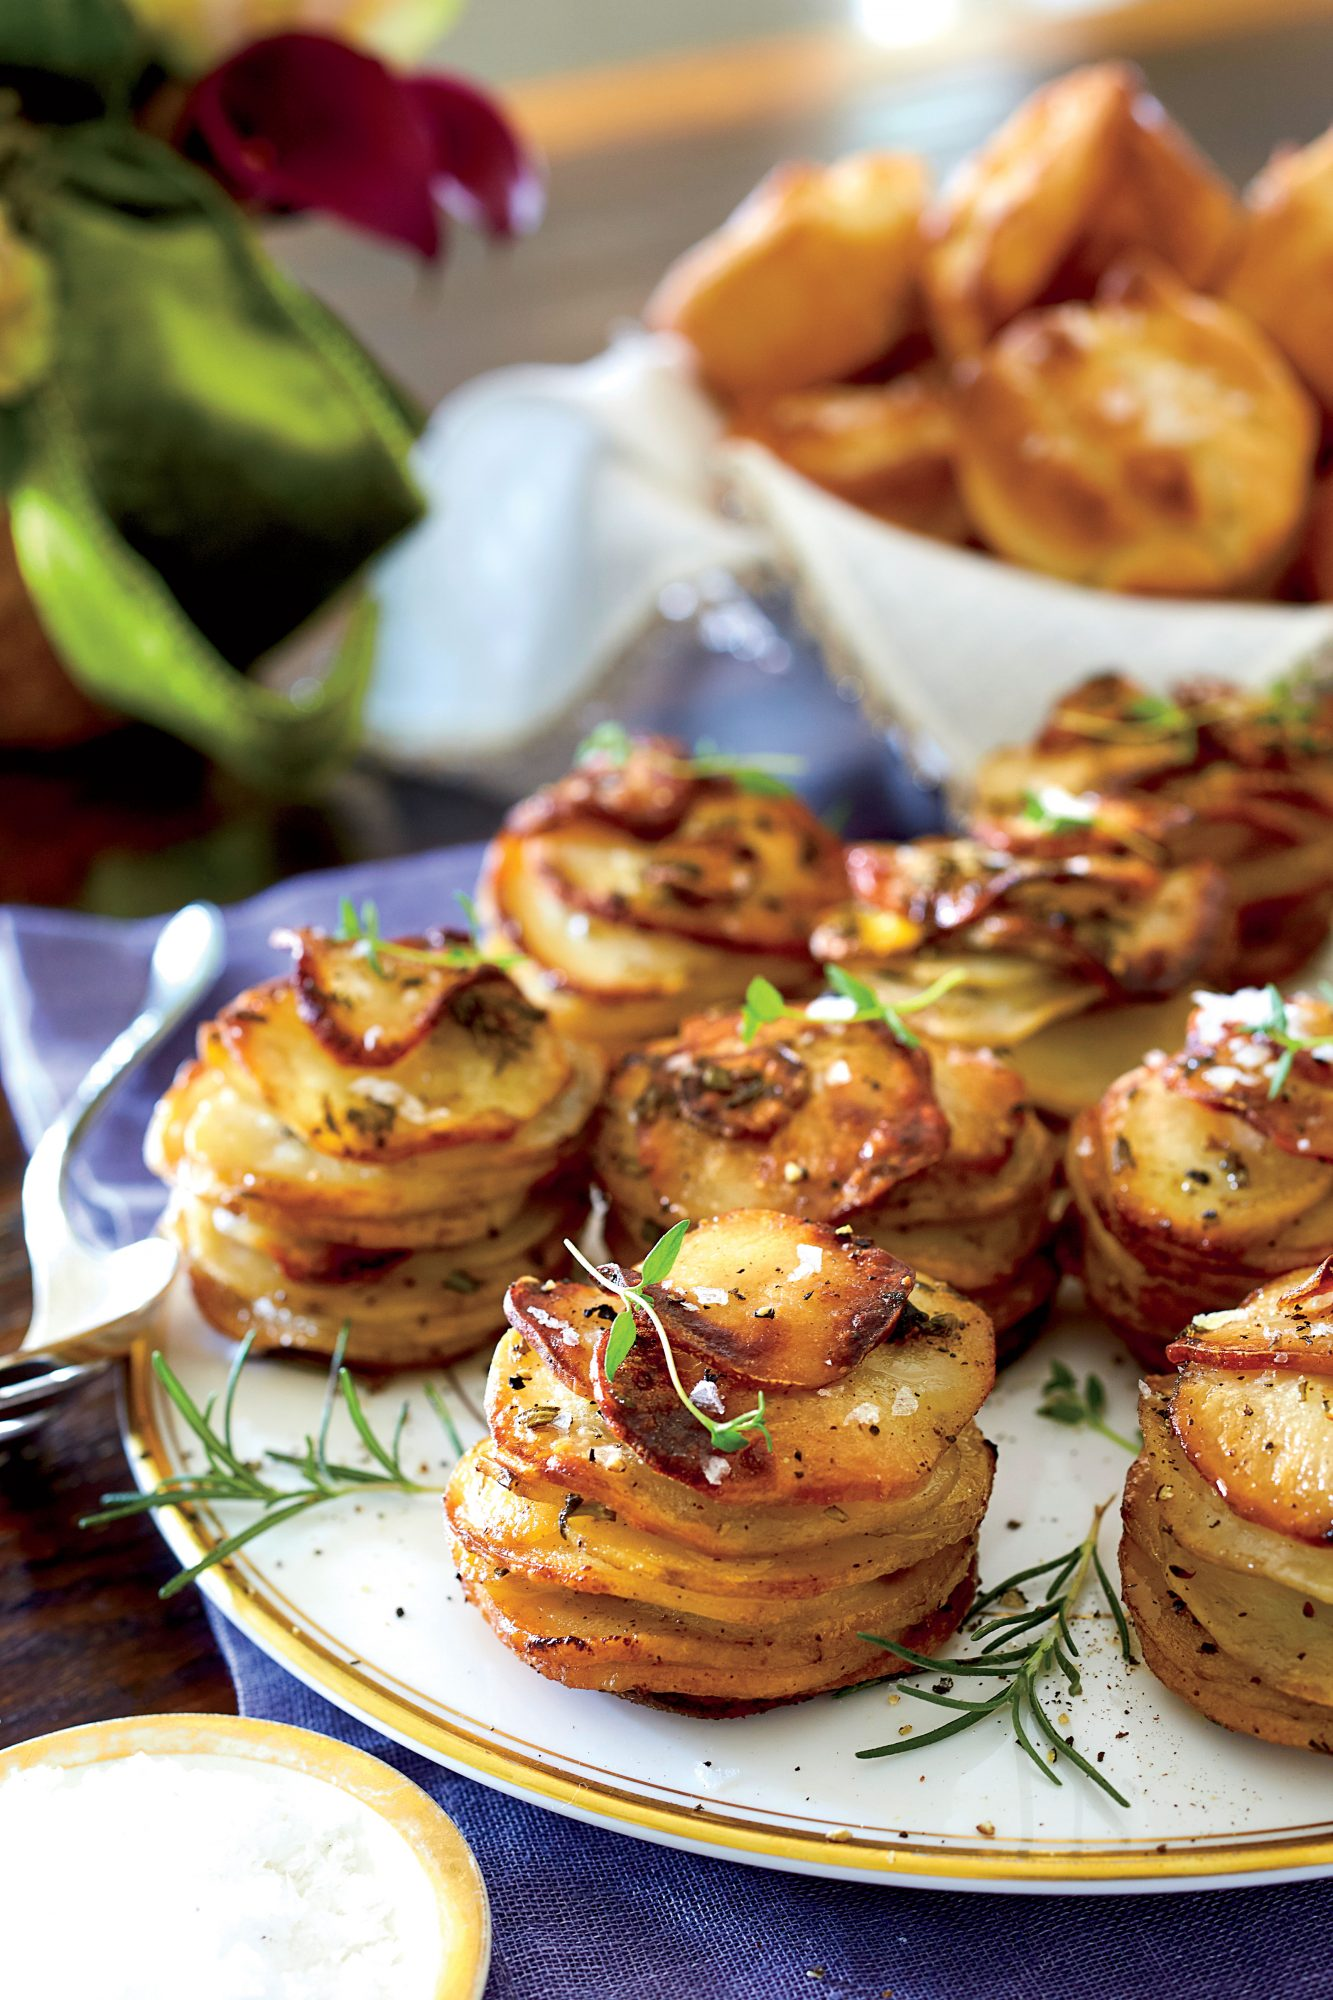 Garnish from potatoes will help in any case